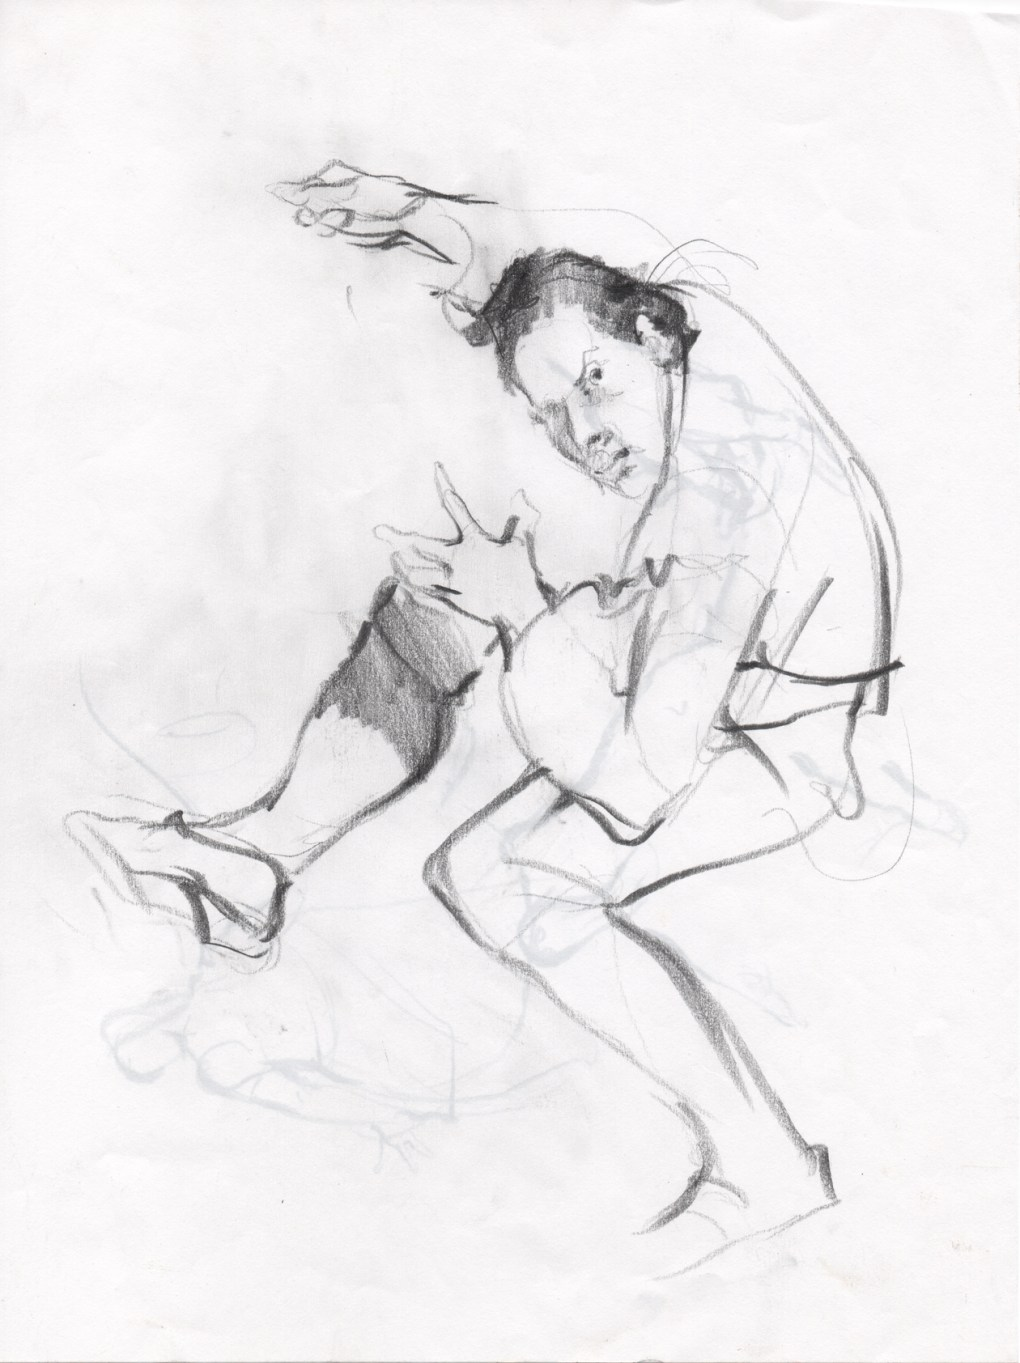 Sketches - Pencil Drawings - Figure Drawing : The sketch of a figure II, pencil drawing.